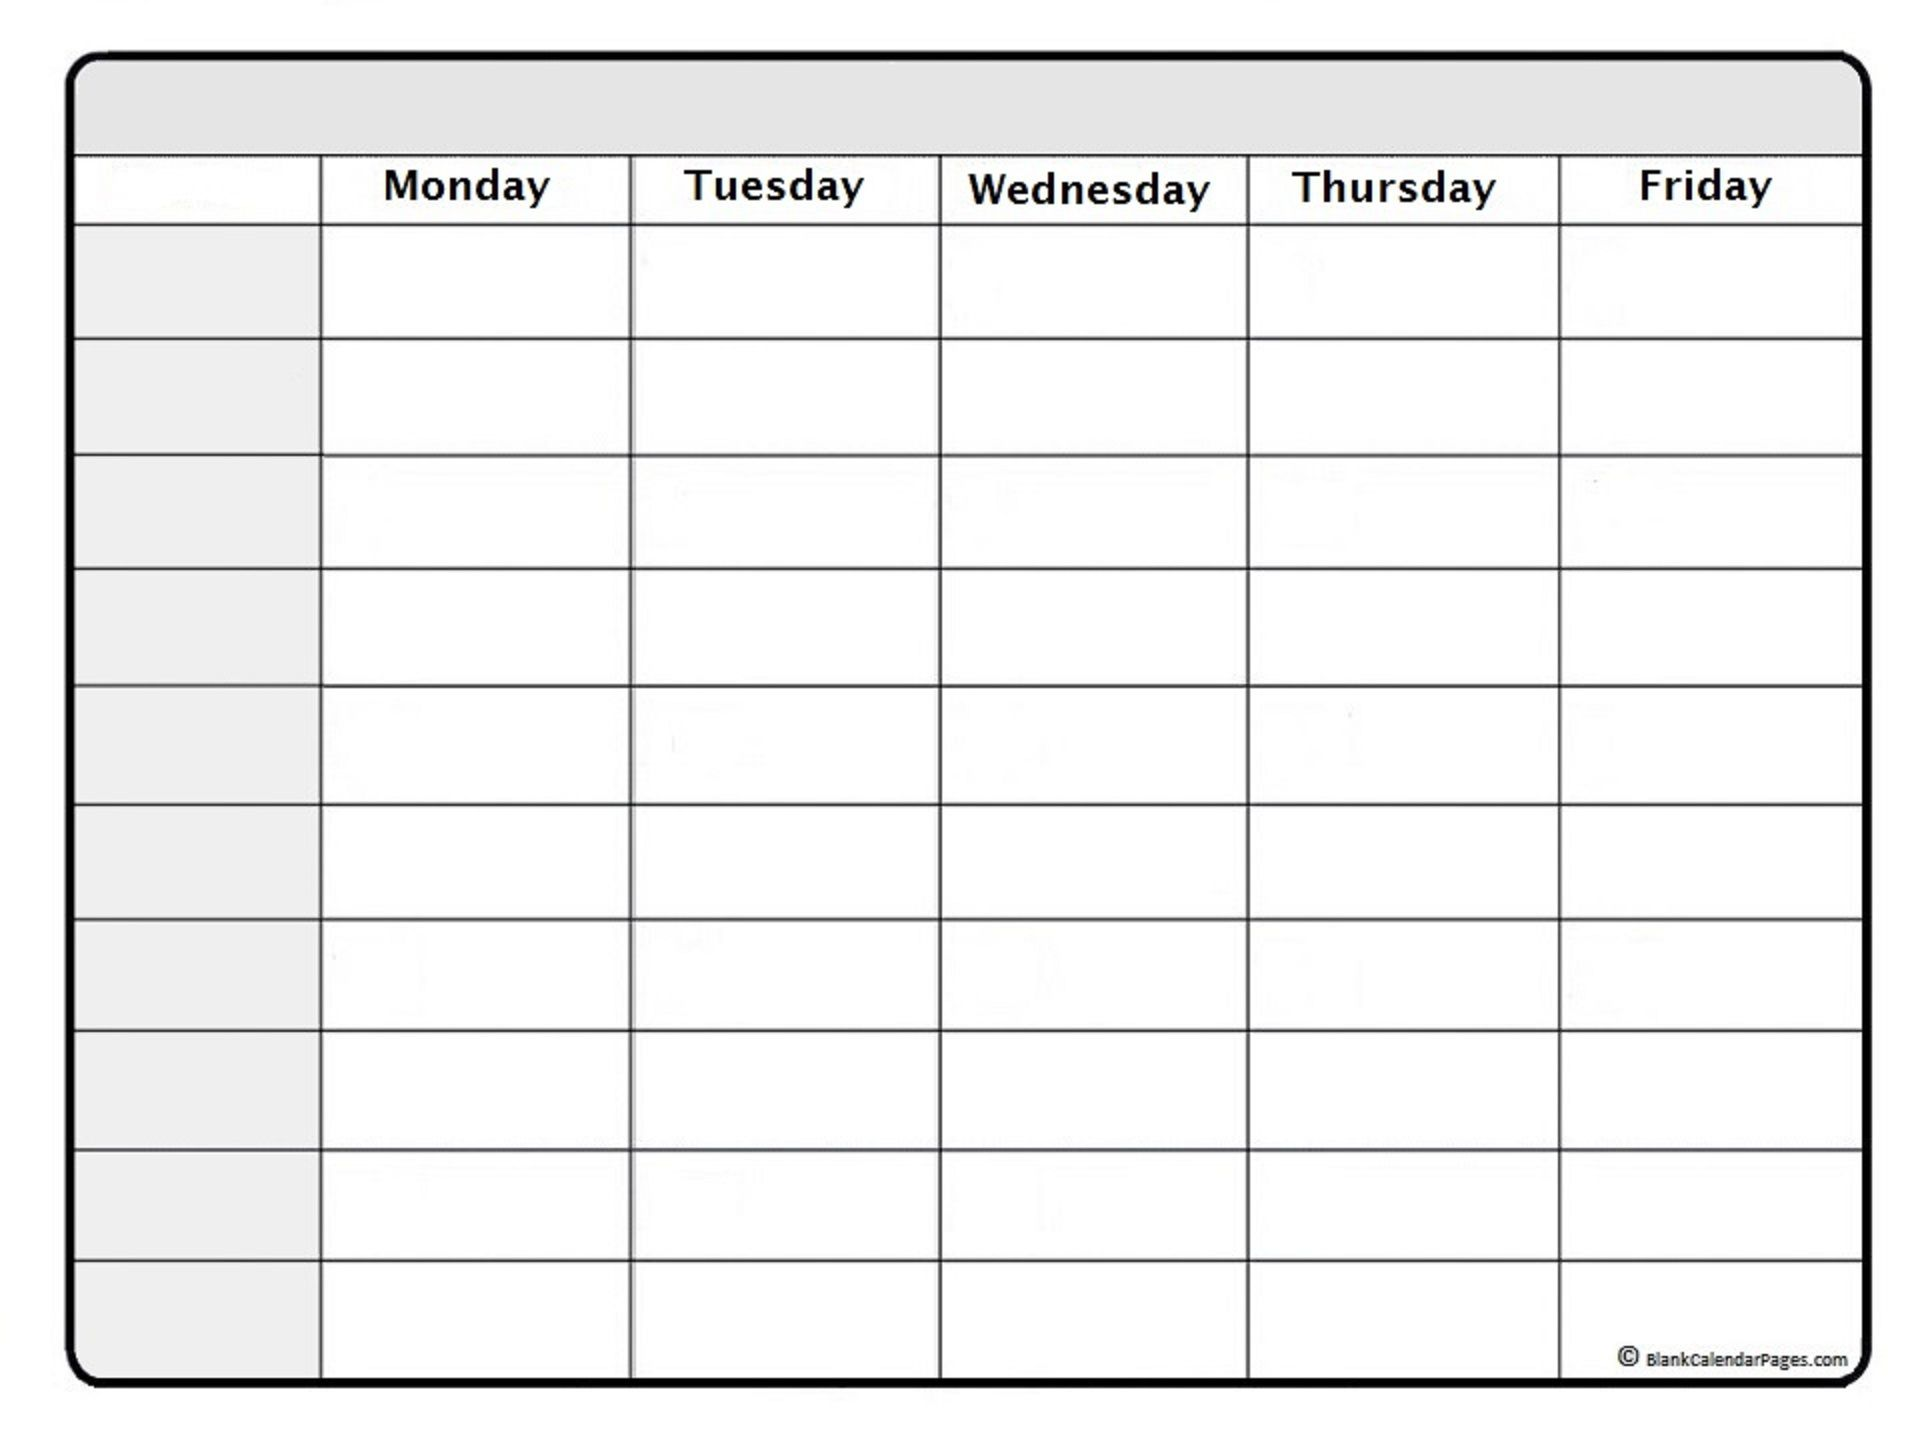 002 Unforgettable Free Weekly Calendar Template High Resolution  Printable With Time Slot 2019 WordFull